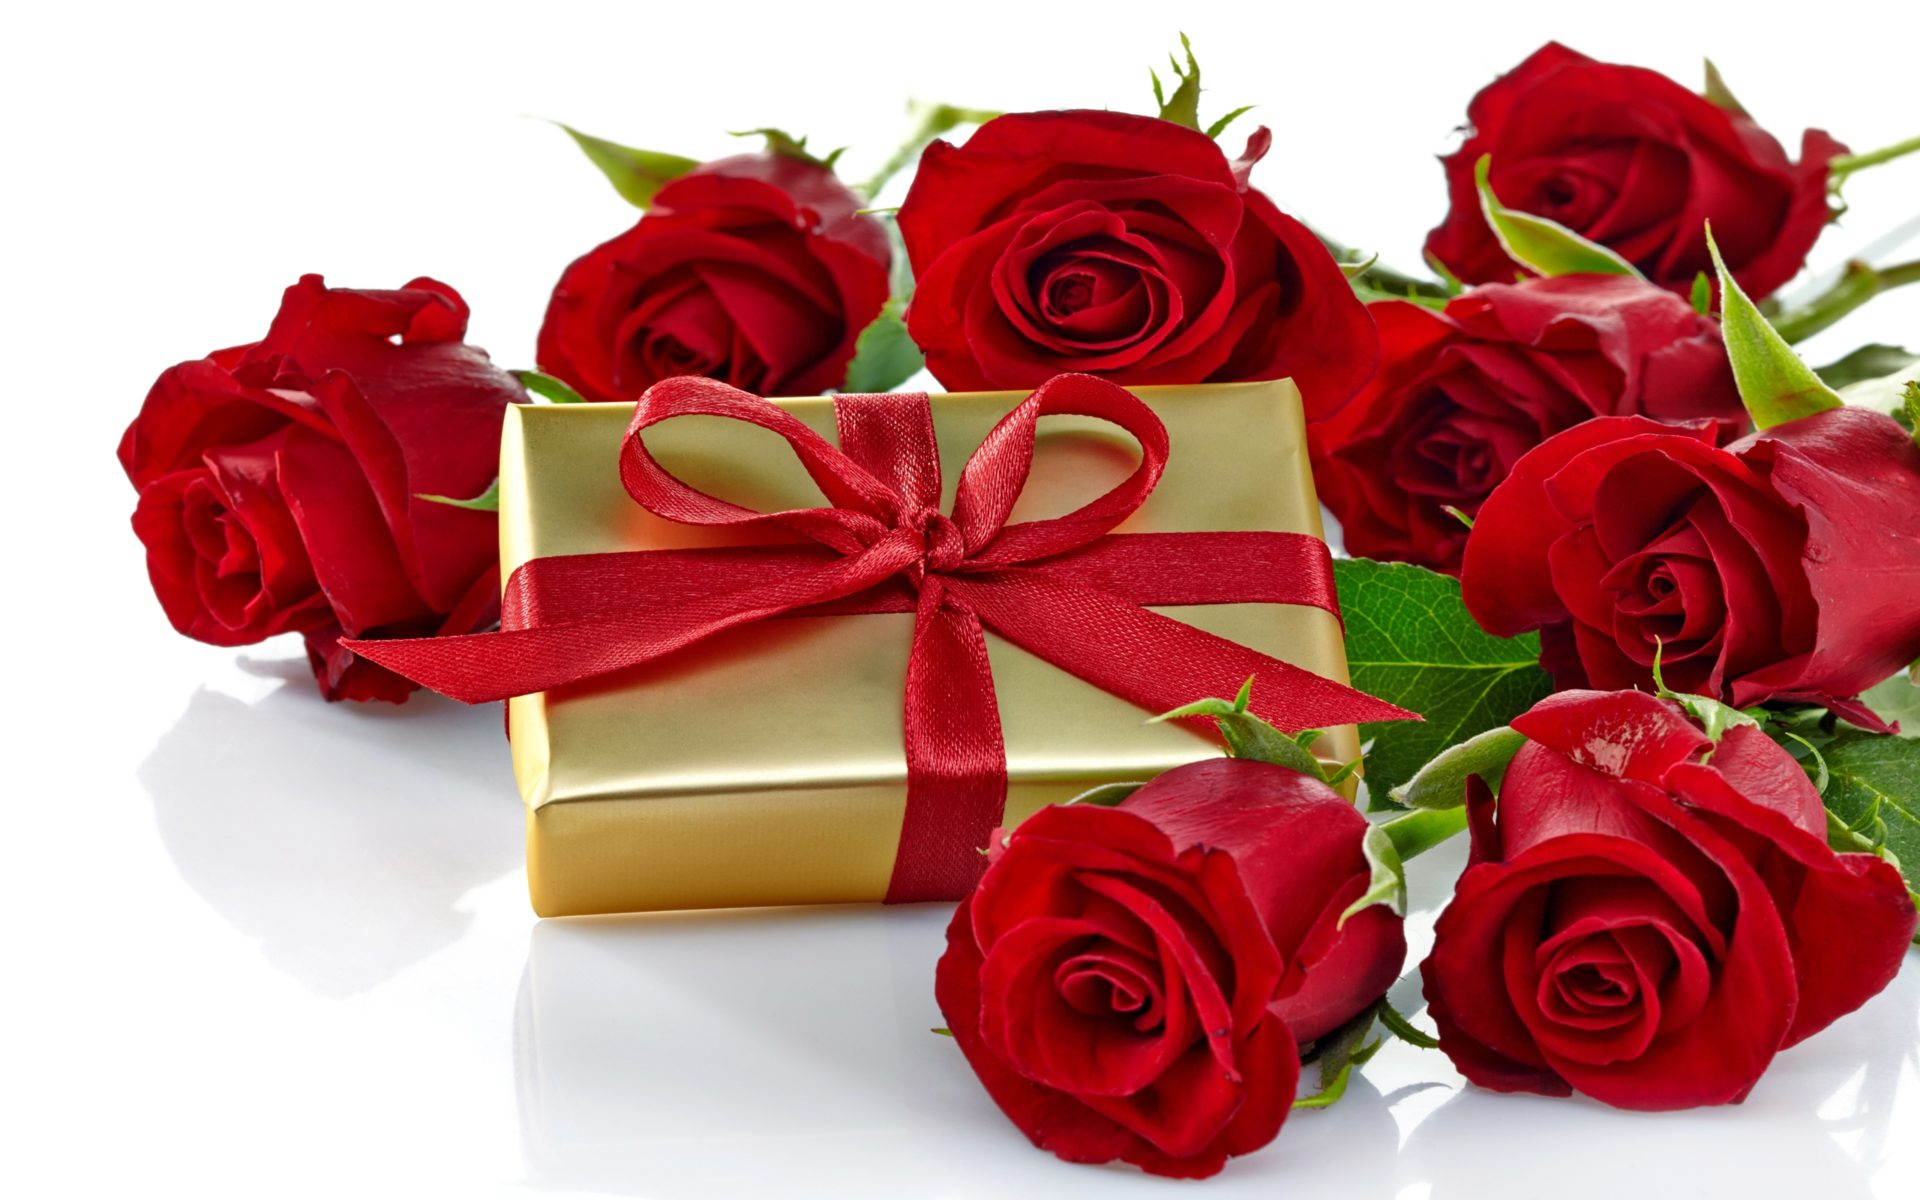 Roses Romantic Love Gift Bow Nature Flowers Hd Wallpaper 1918